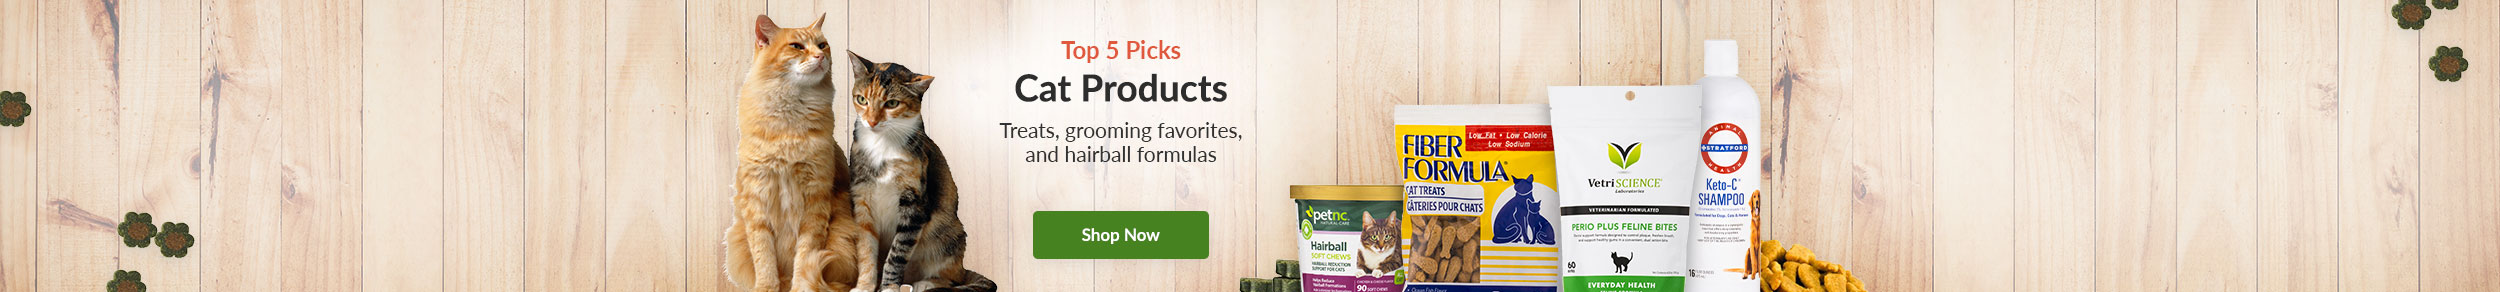 https://i3.pureformulas.net/images/static/Top-5-Picks-for-Cats_122818.jpg